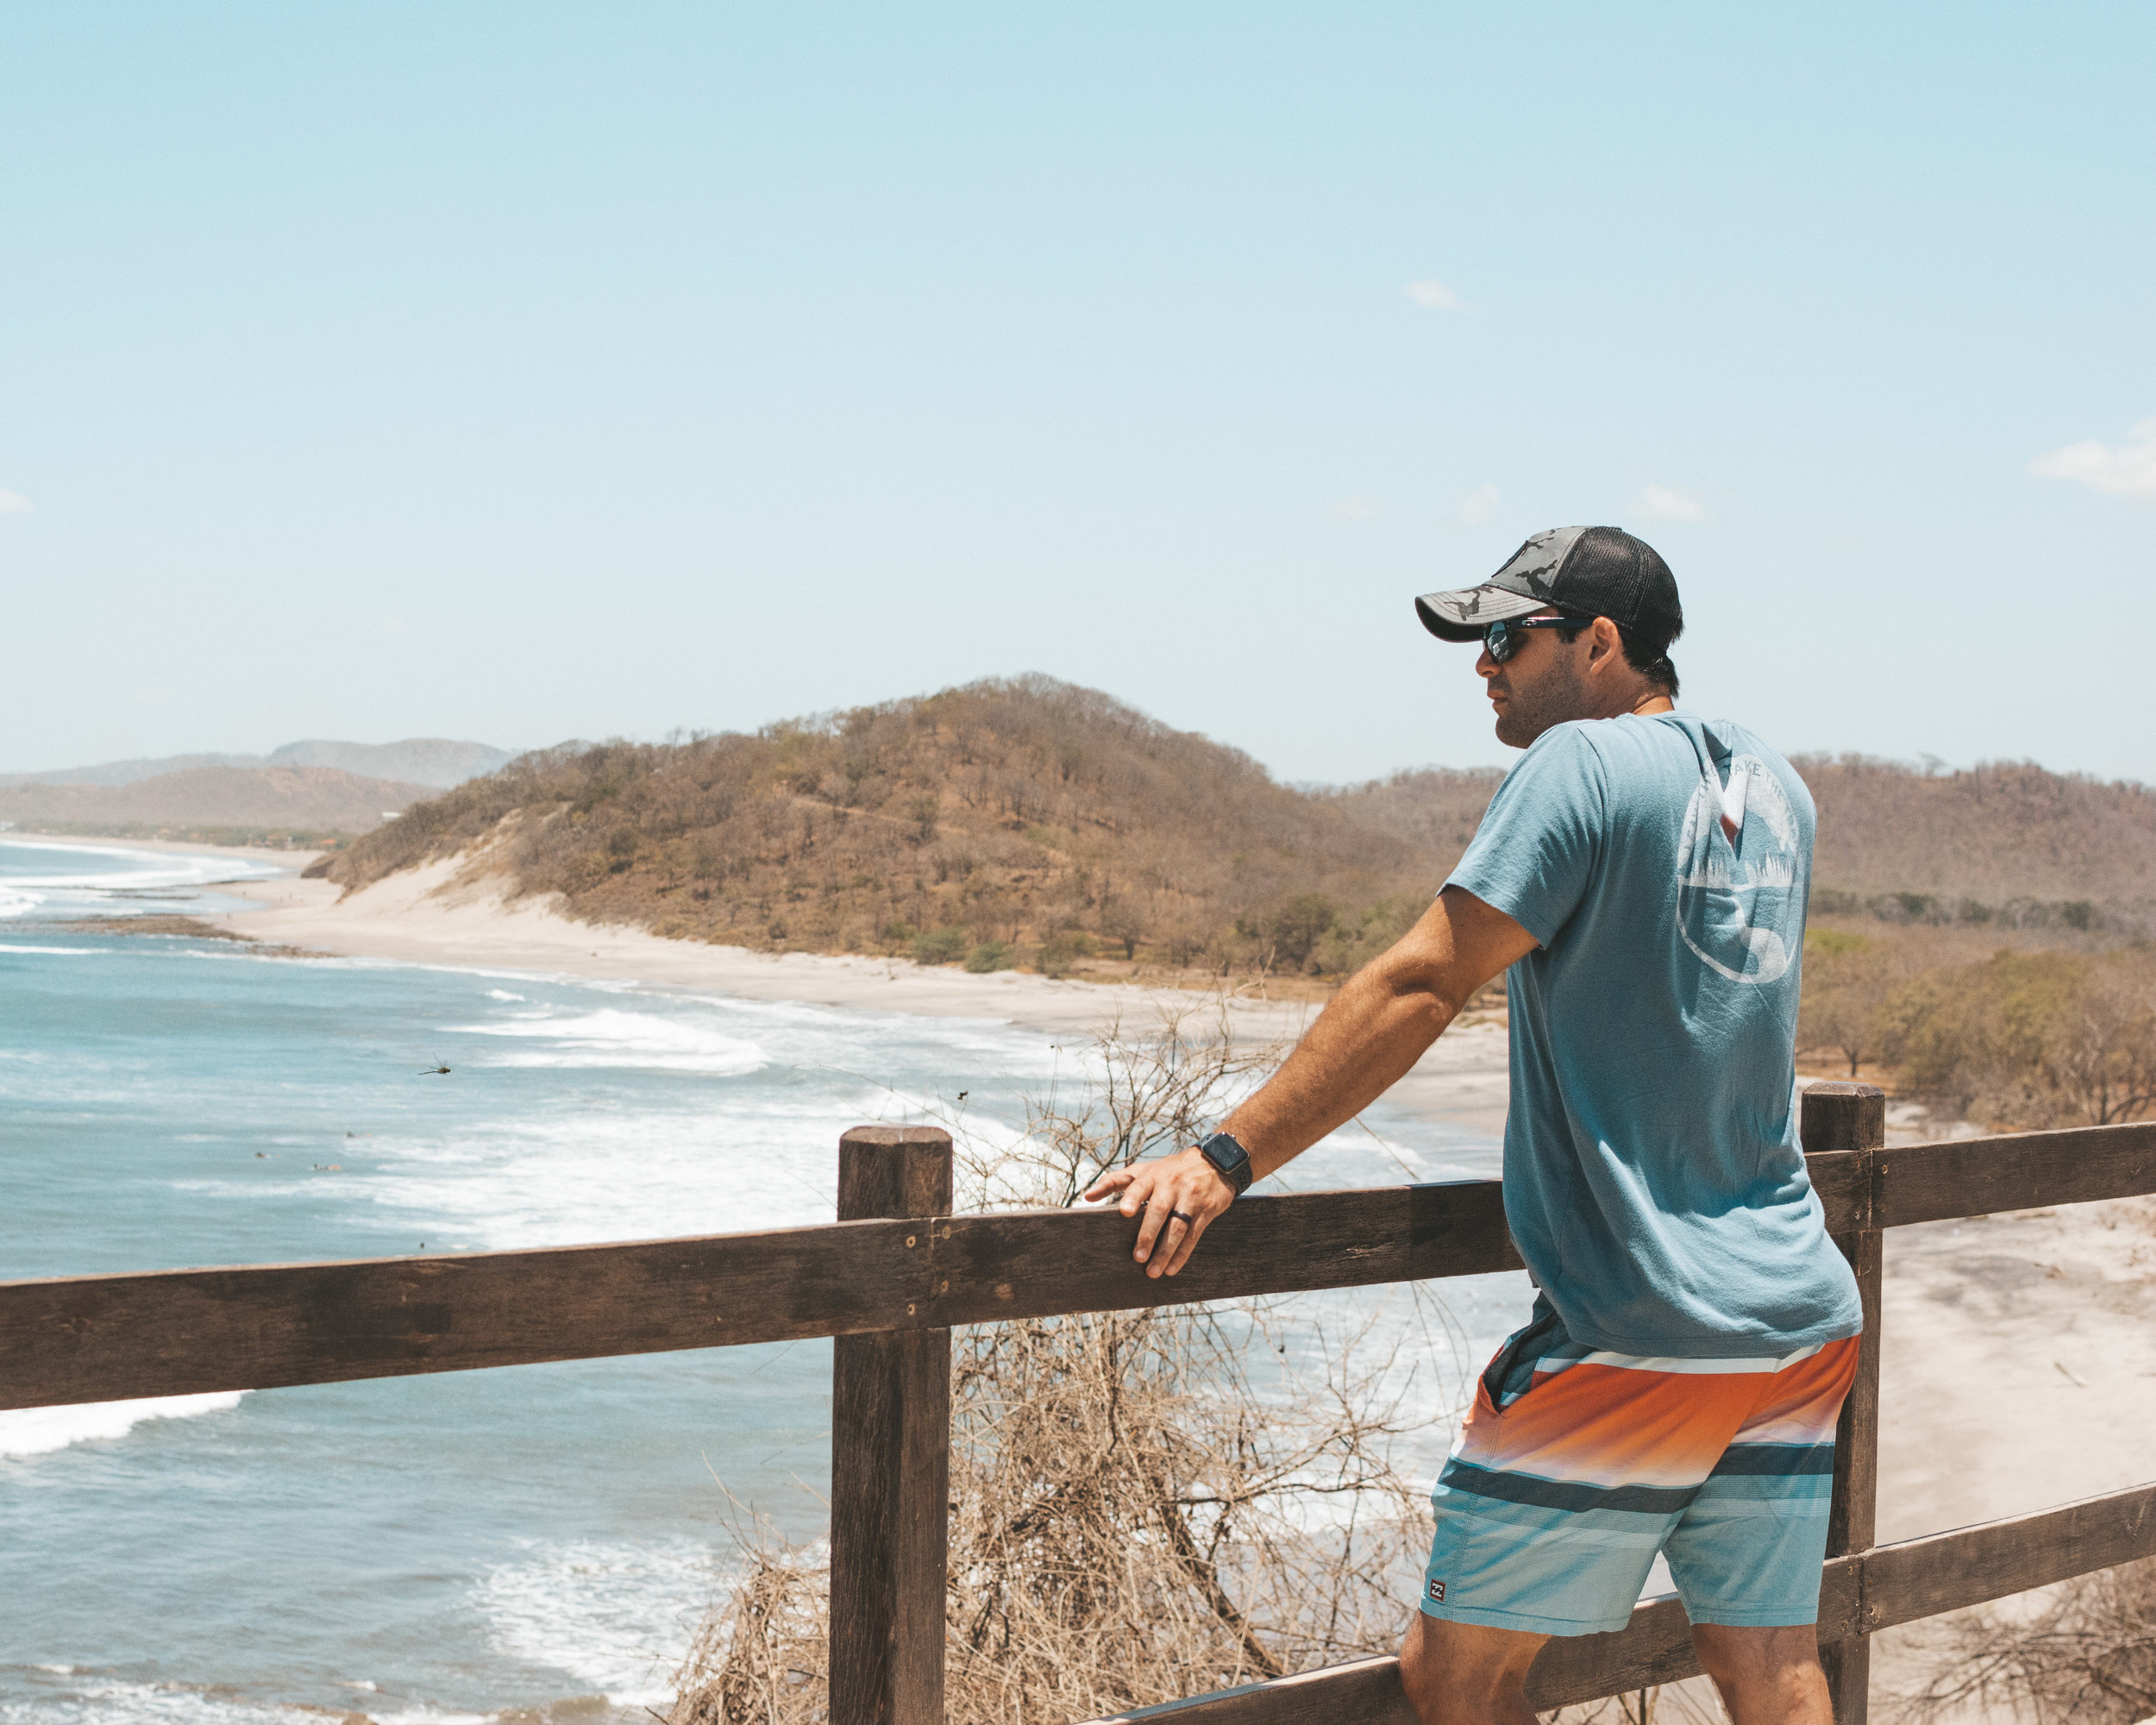 Watching the surfers in Popoyo, Nicaragua